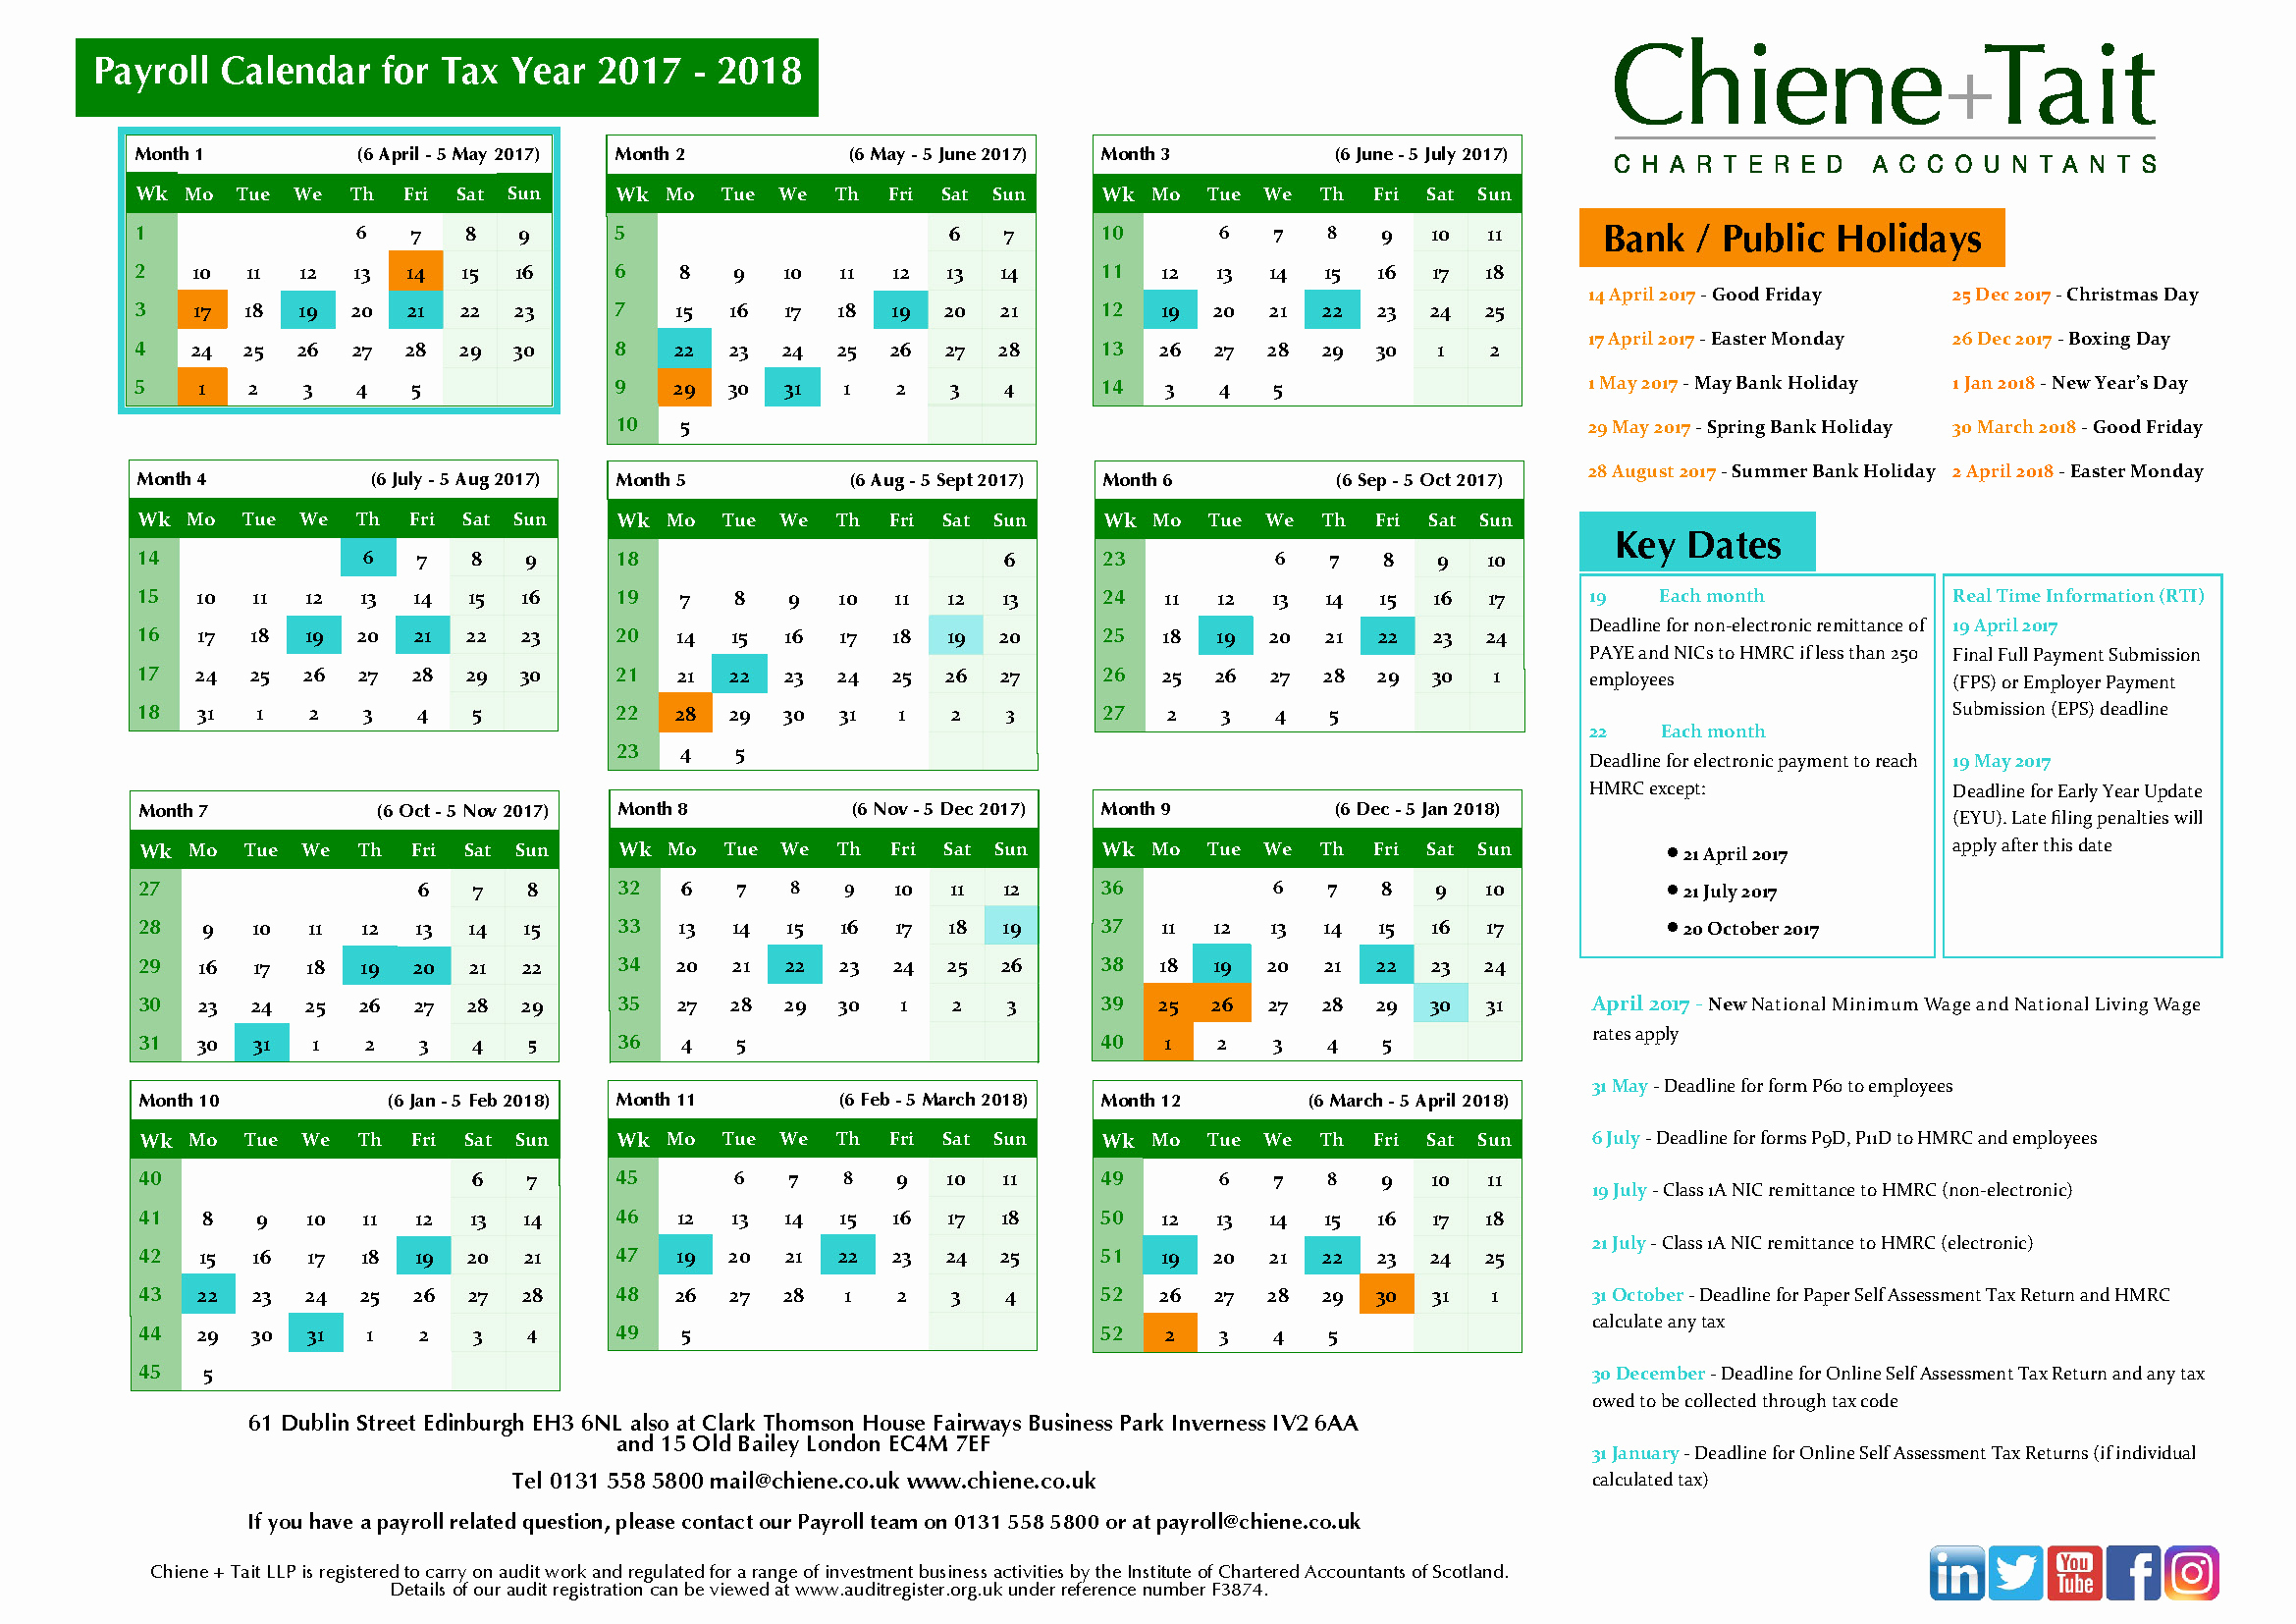 Payroll Calendar For Nc State Employees | Payroll Calendars with regard to Jcps Payroll Calendar